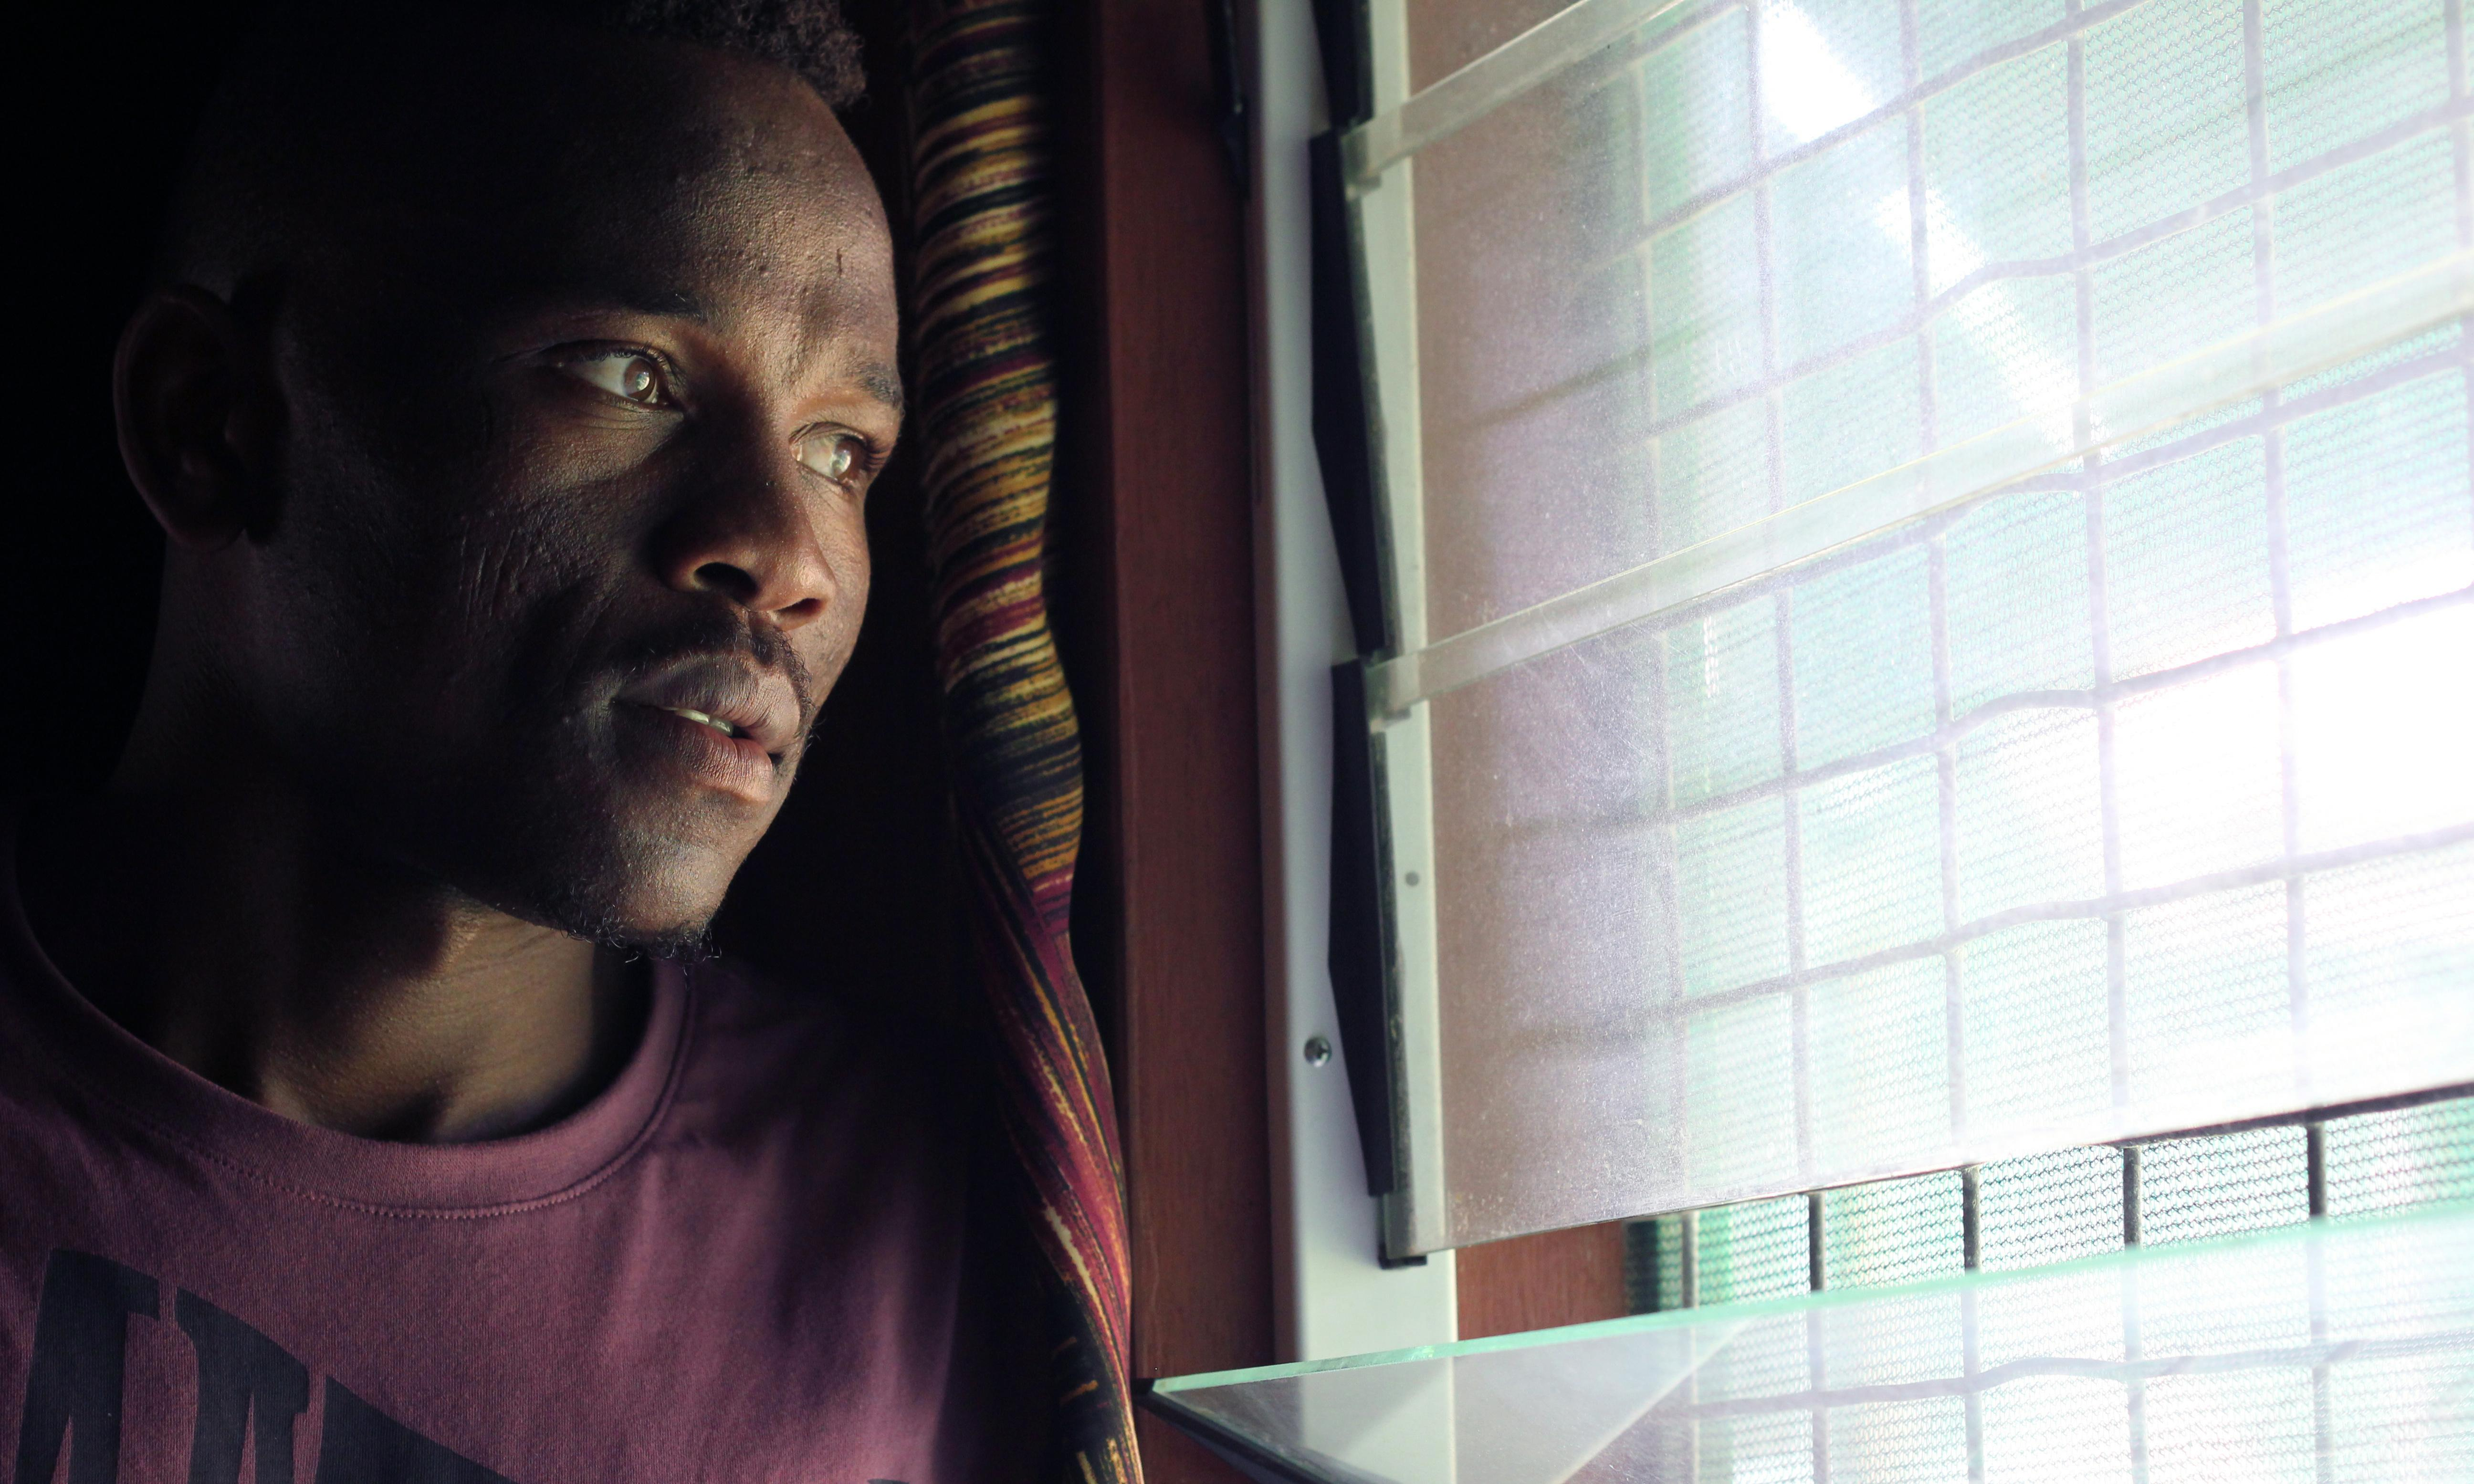 Former Manus Island detainee tells UN 'human beings are being destroyed'